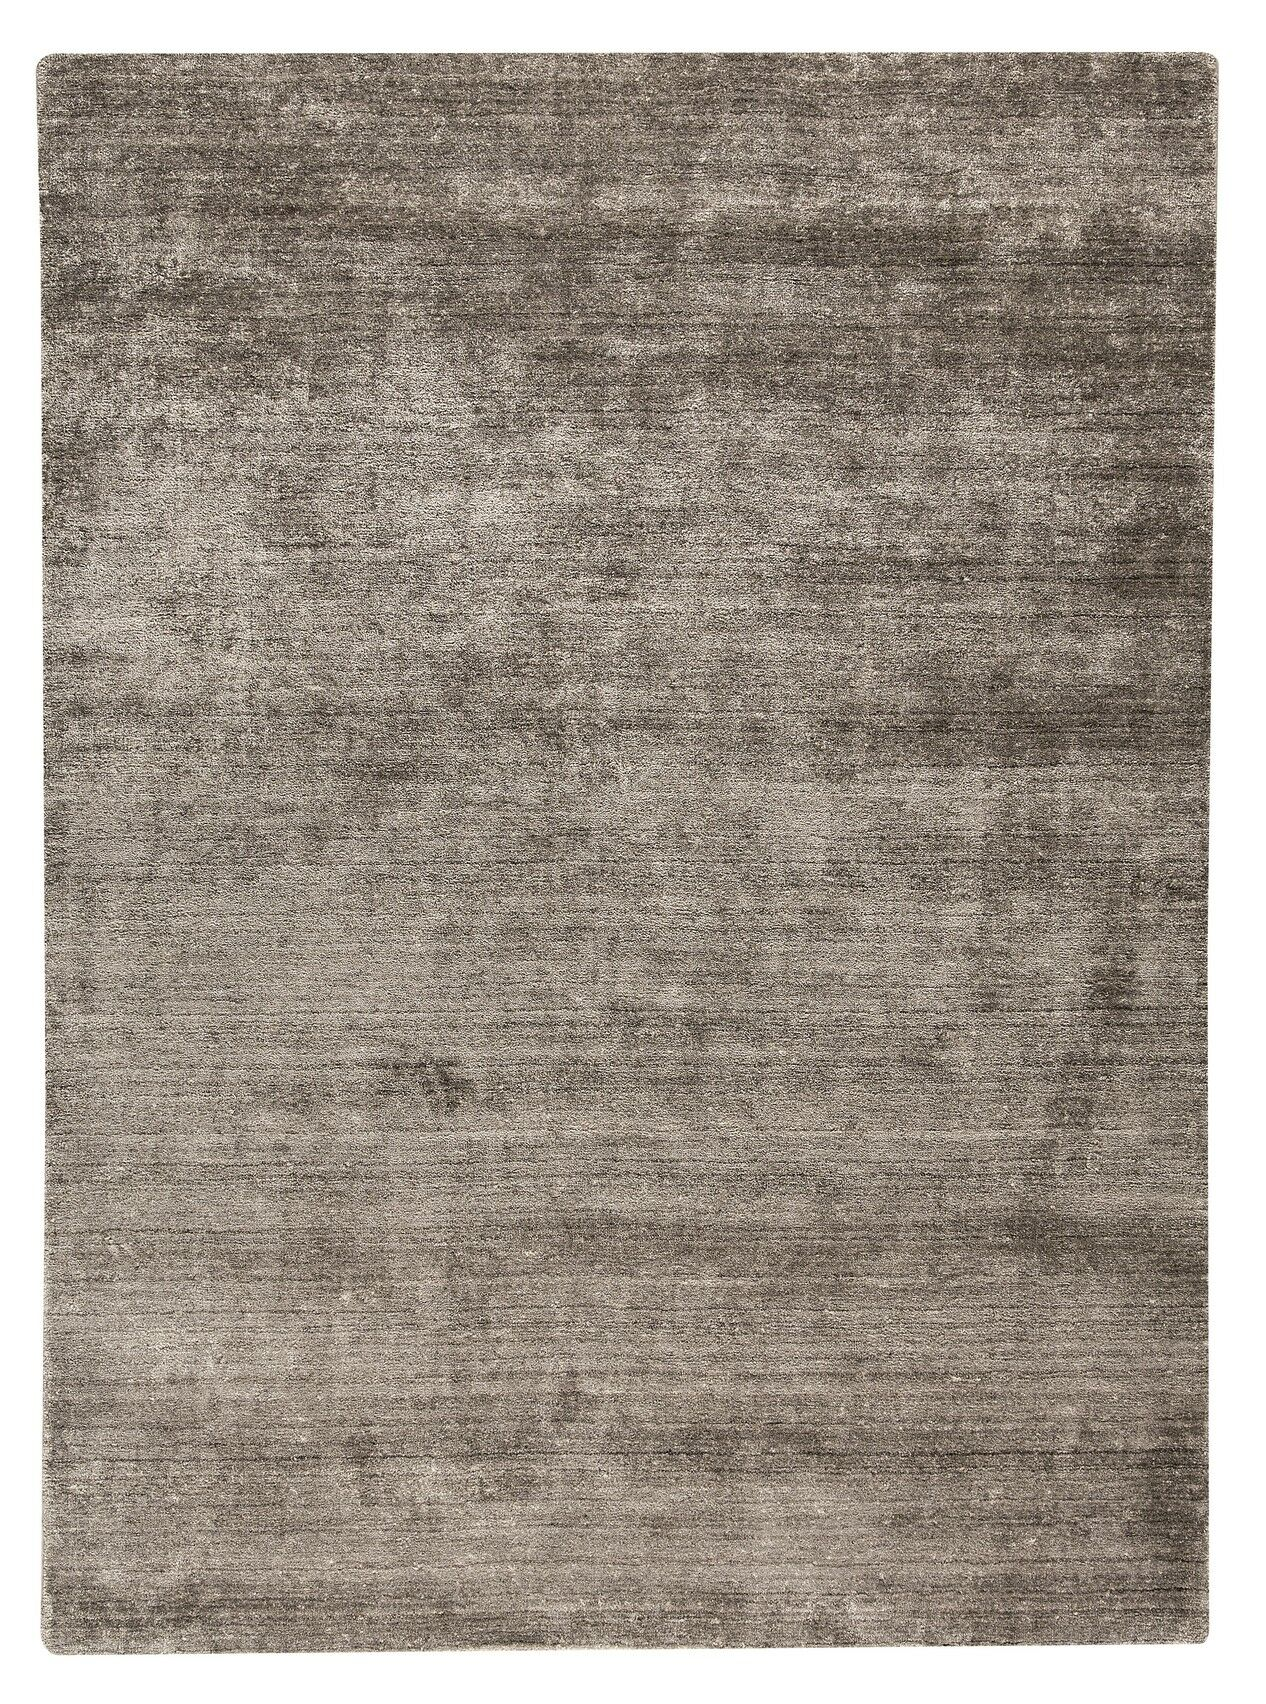 Platinum Hand-Woven Taupe Area Rug Rug Size: 6'6